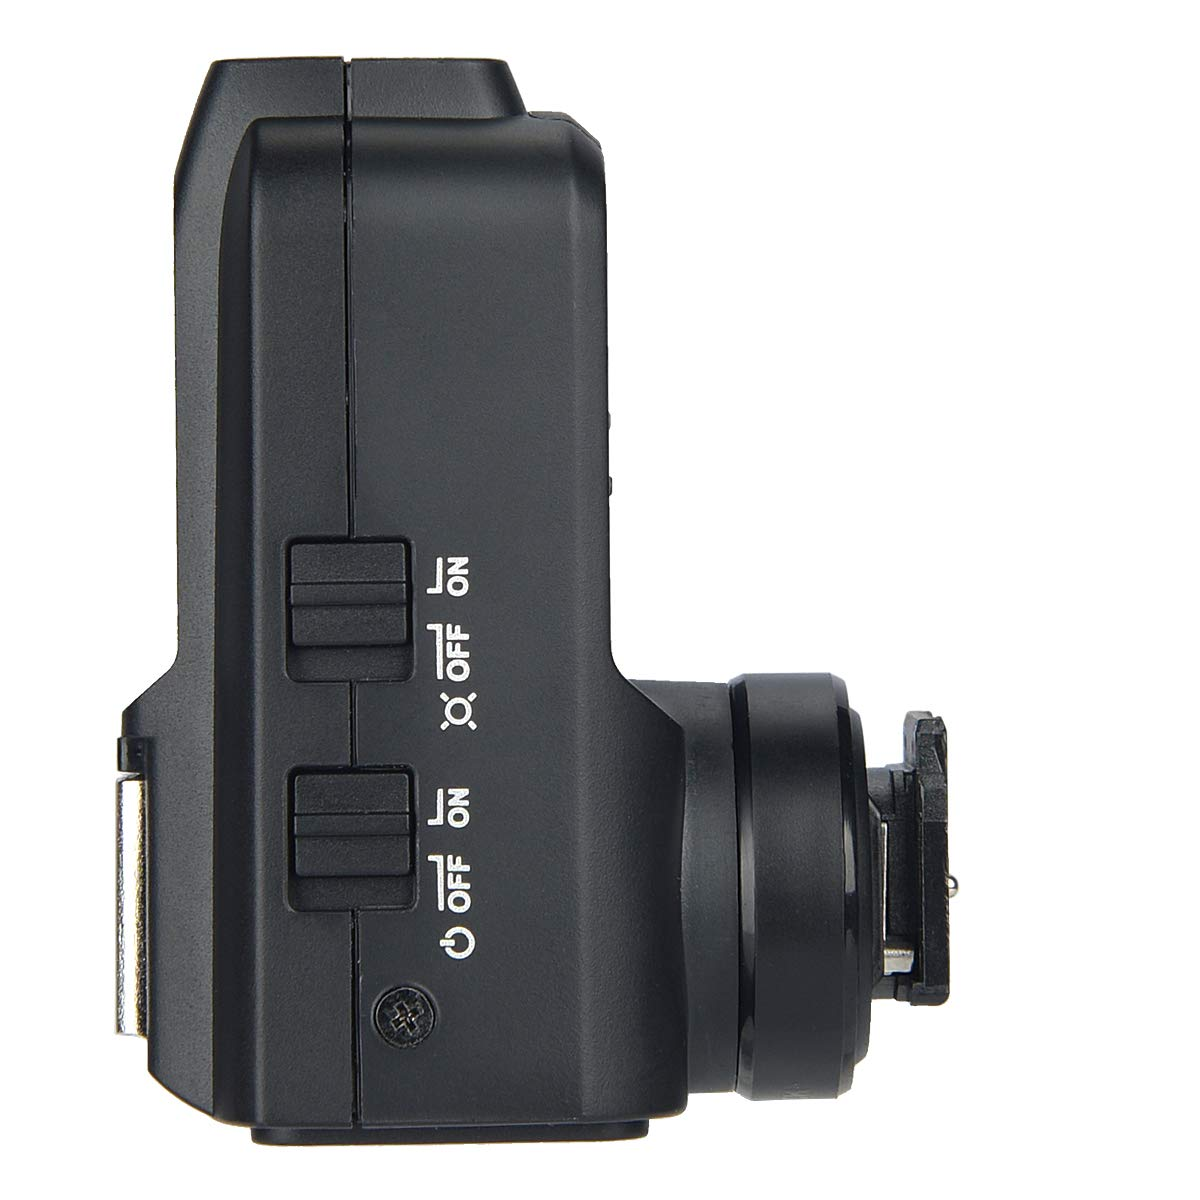 Godox X2T-S TTL Wireless Trigger, 1/8000s High-Speed Sync 2.4G TTL Transmitter, Compatible with Sony DSLR (X2T-S) by Godox (Image #5)